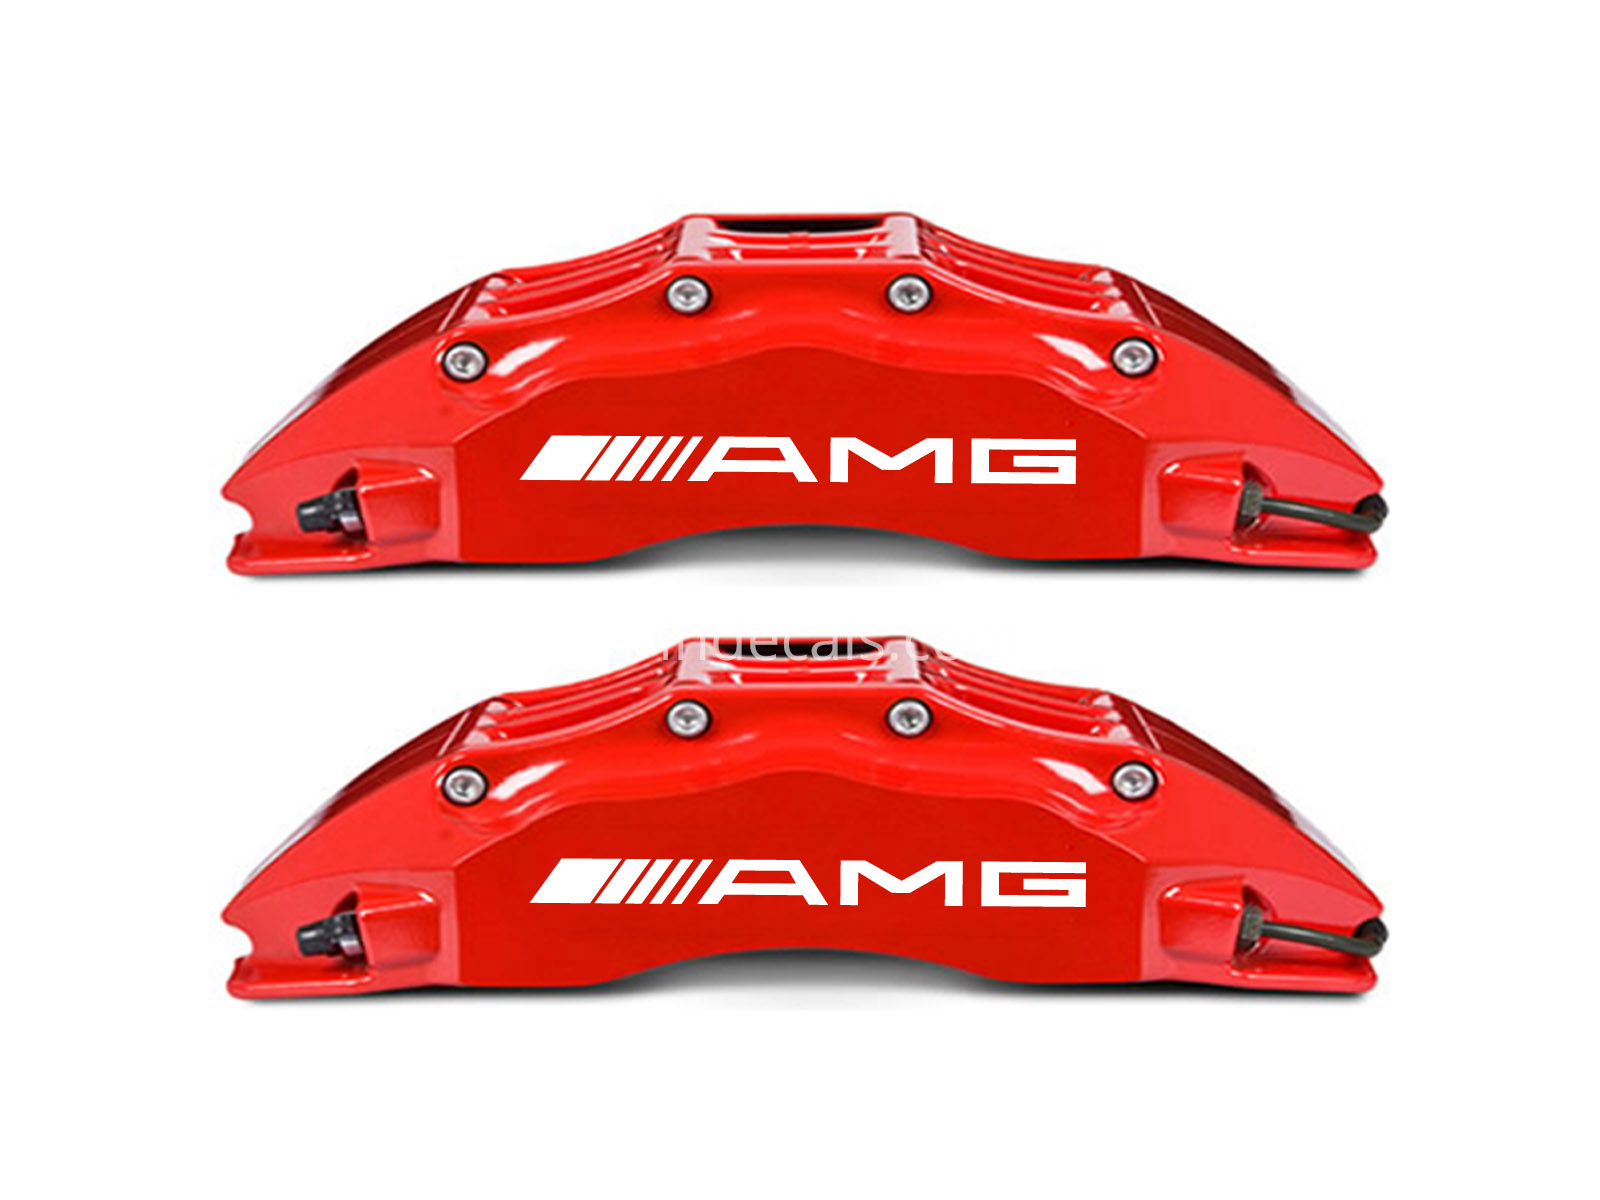 6 x AMG Stickers for Brakes - White